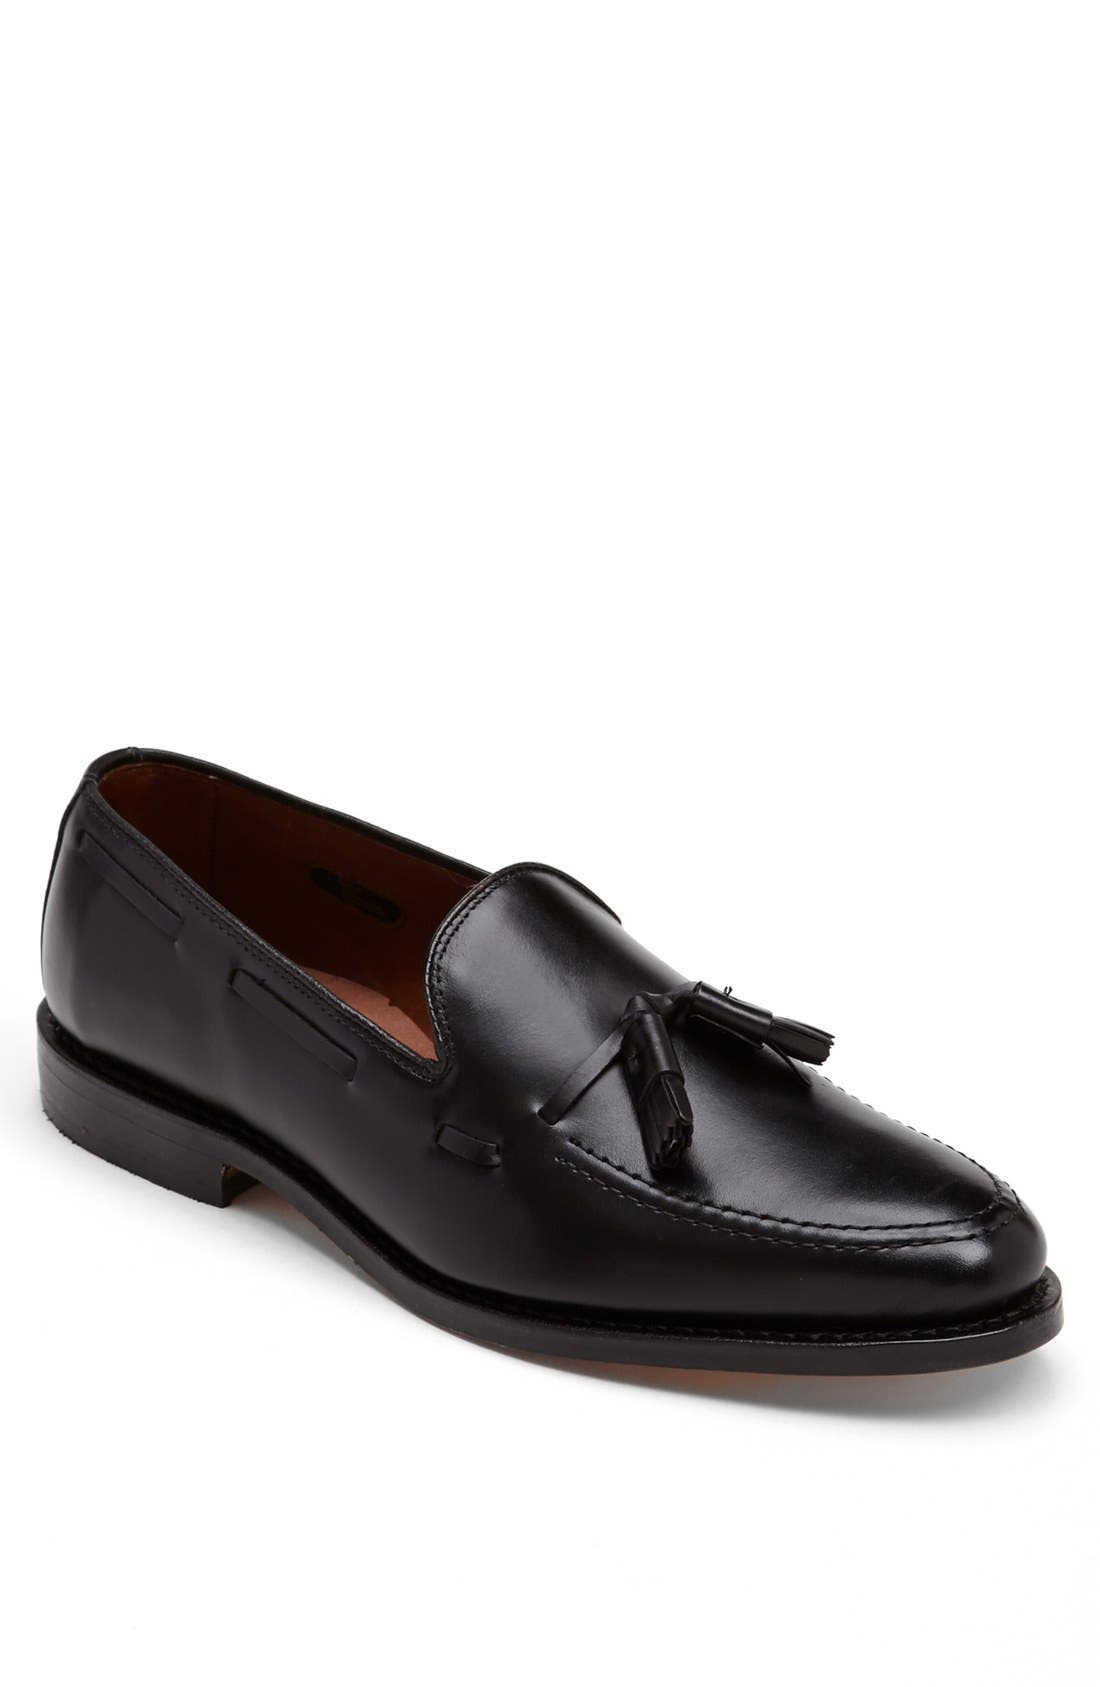 'Grayson' Tassel Loafer,                         Main,                         color, Black Leather